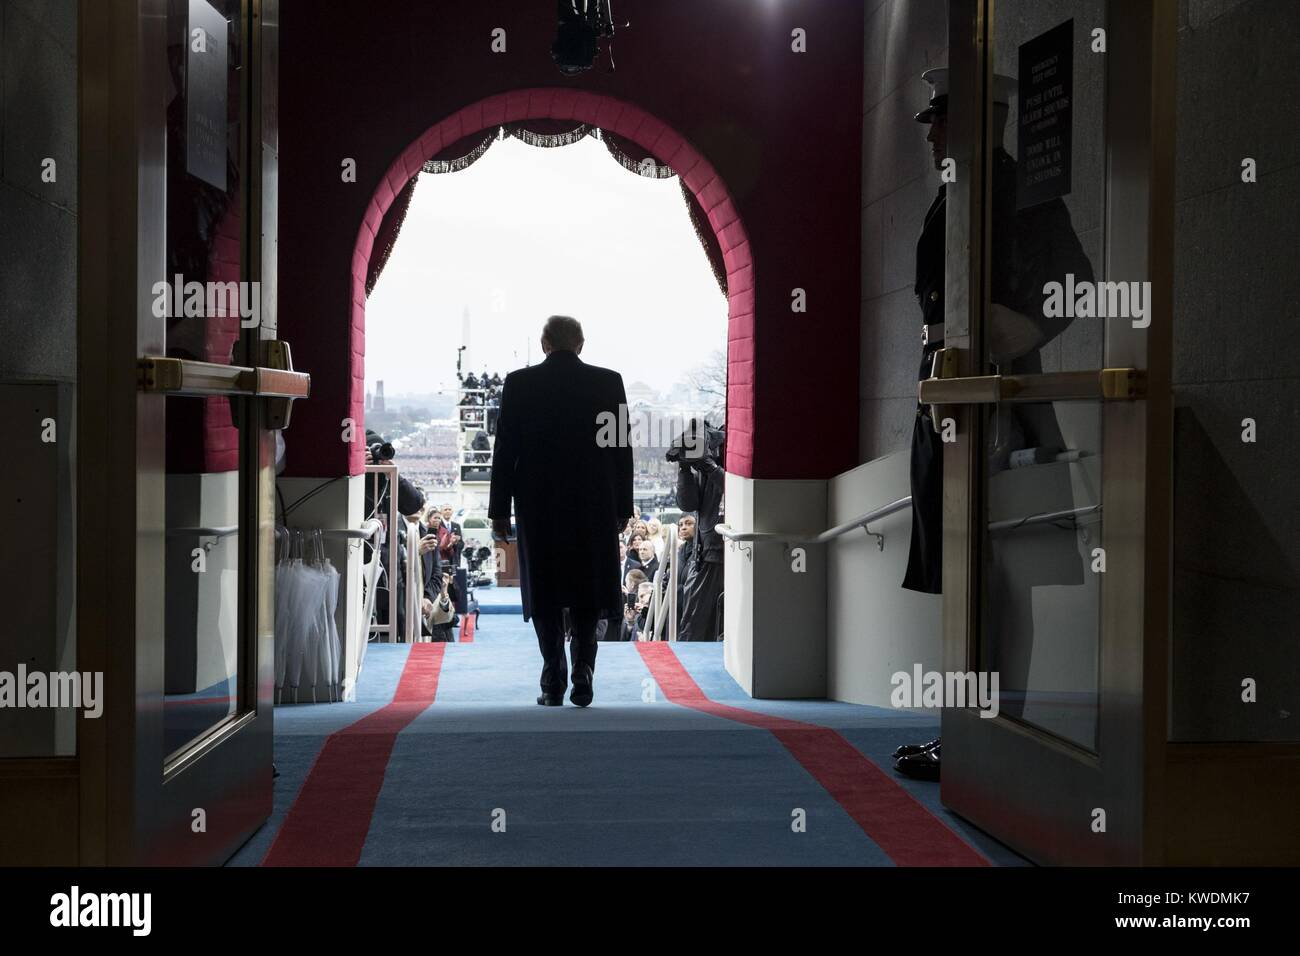 Back view of President-elect Donald Trump walking to his inaugural swearing-in ceremony. Jan. 19, 2017 (BSLOC 2017 Stock Photo